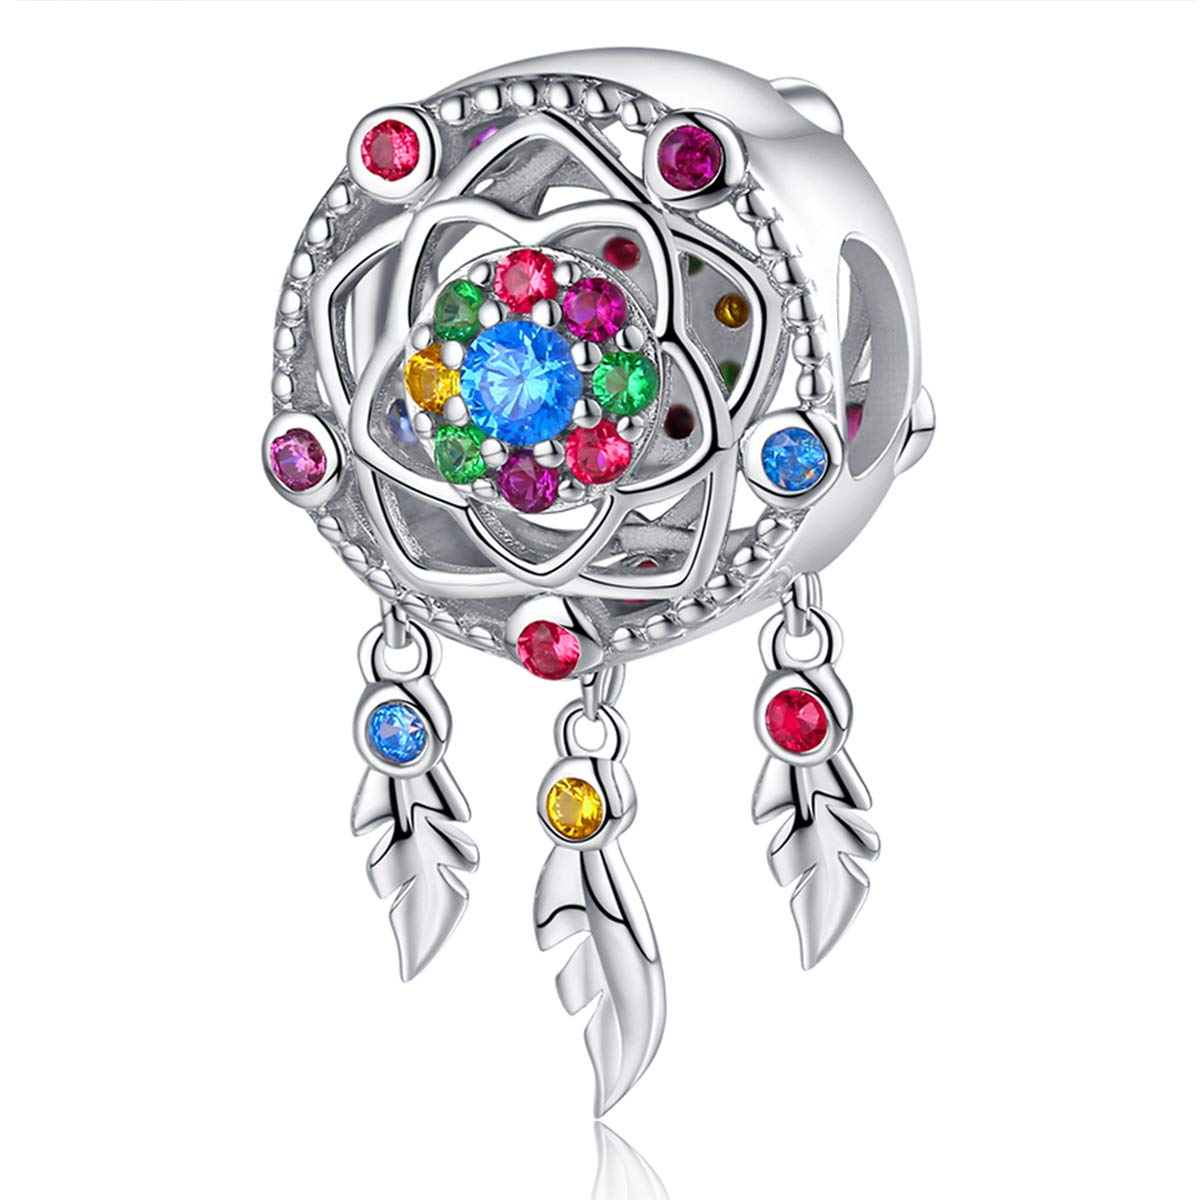 Dream Catcher Charm fit Pandora Charms Bracelet 925 Sterling Silver Feathers Tassel Bead Charm with Colorful Stones Pendant for European Bracelets Necklace FQ0047 (Dream Catcher Charm Colorful) by FOREVER QUEEN